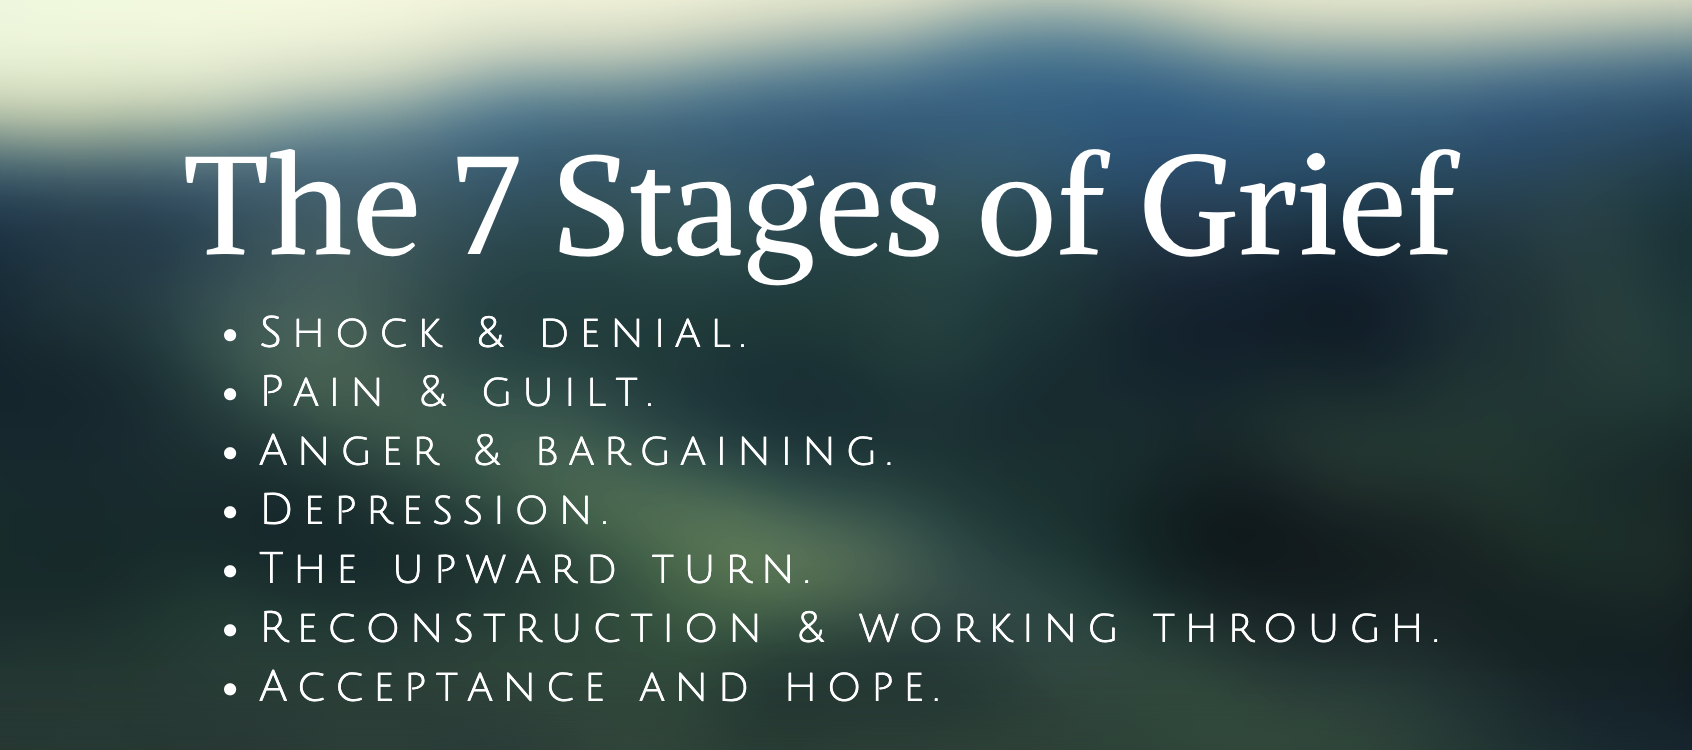 The 7 stages of grief written over a blurred background.